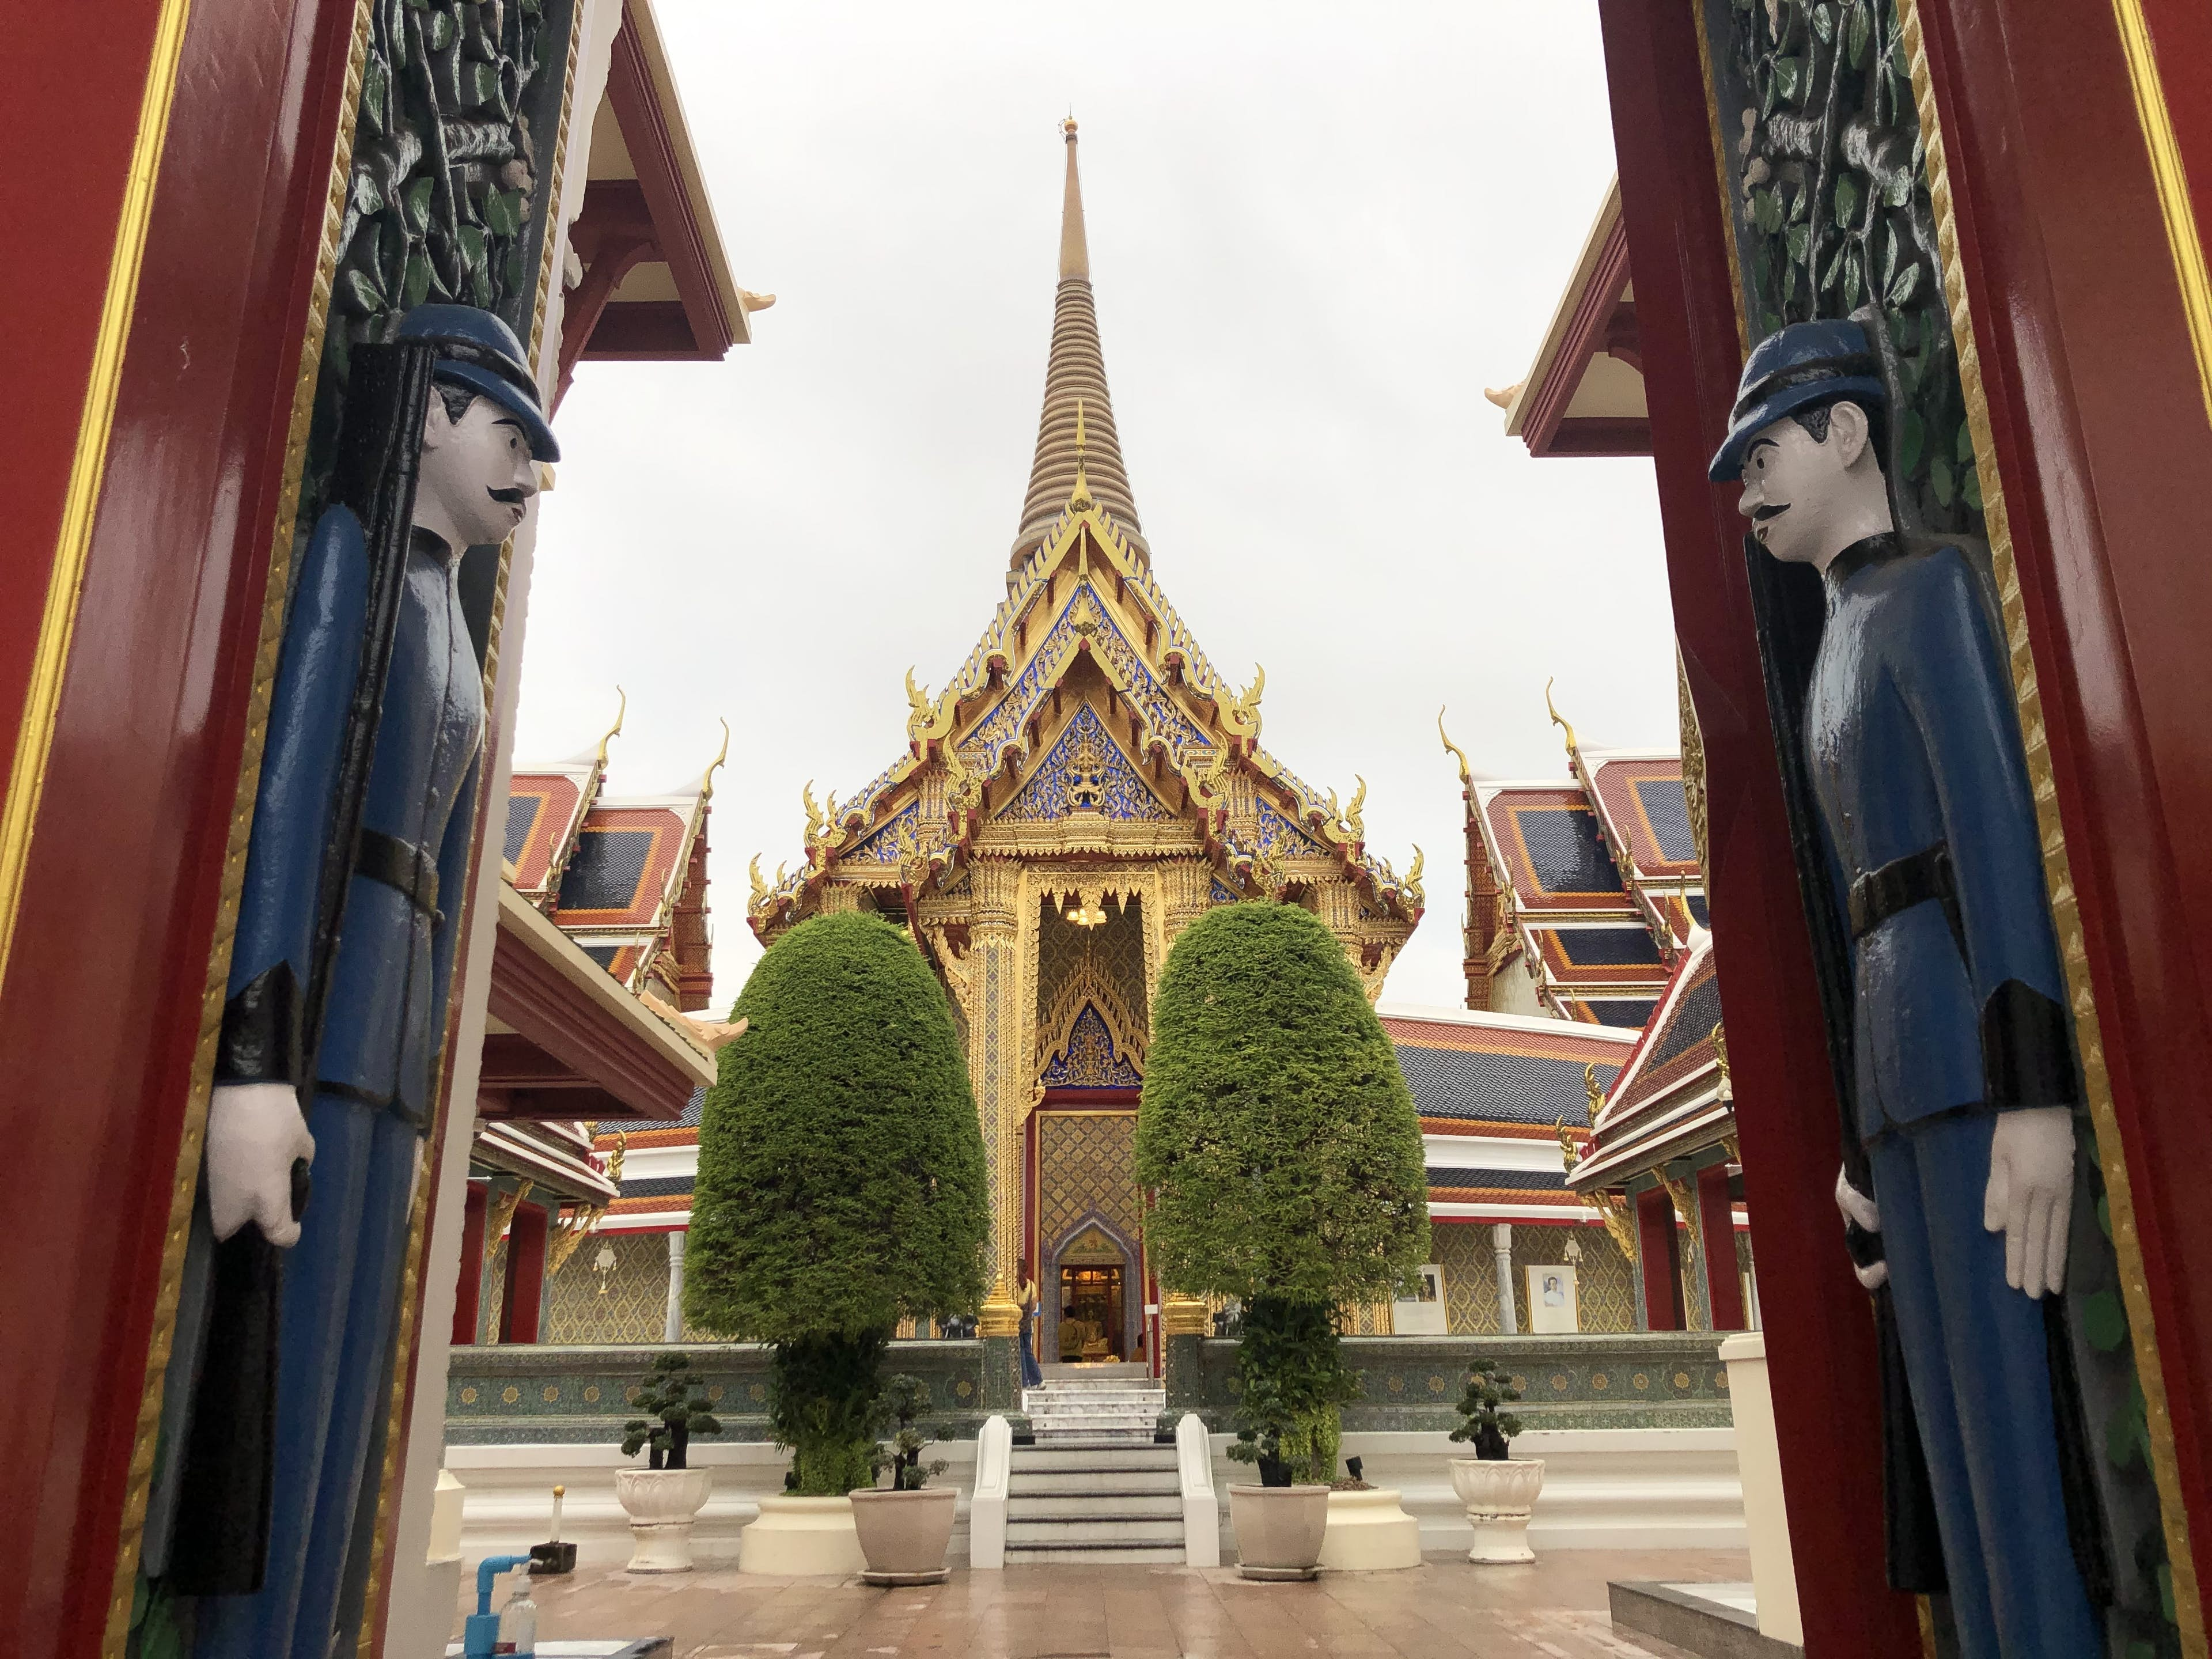 Bangkok's Old Town and Temples: The forgotten heritage image